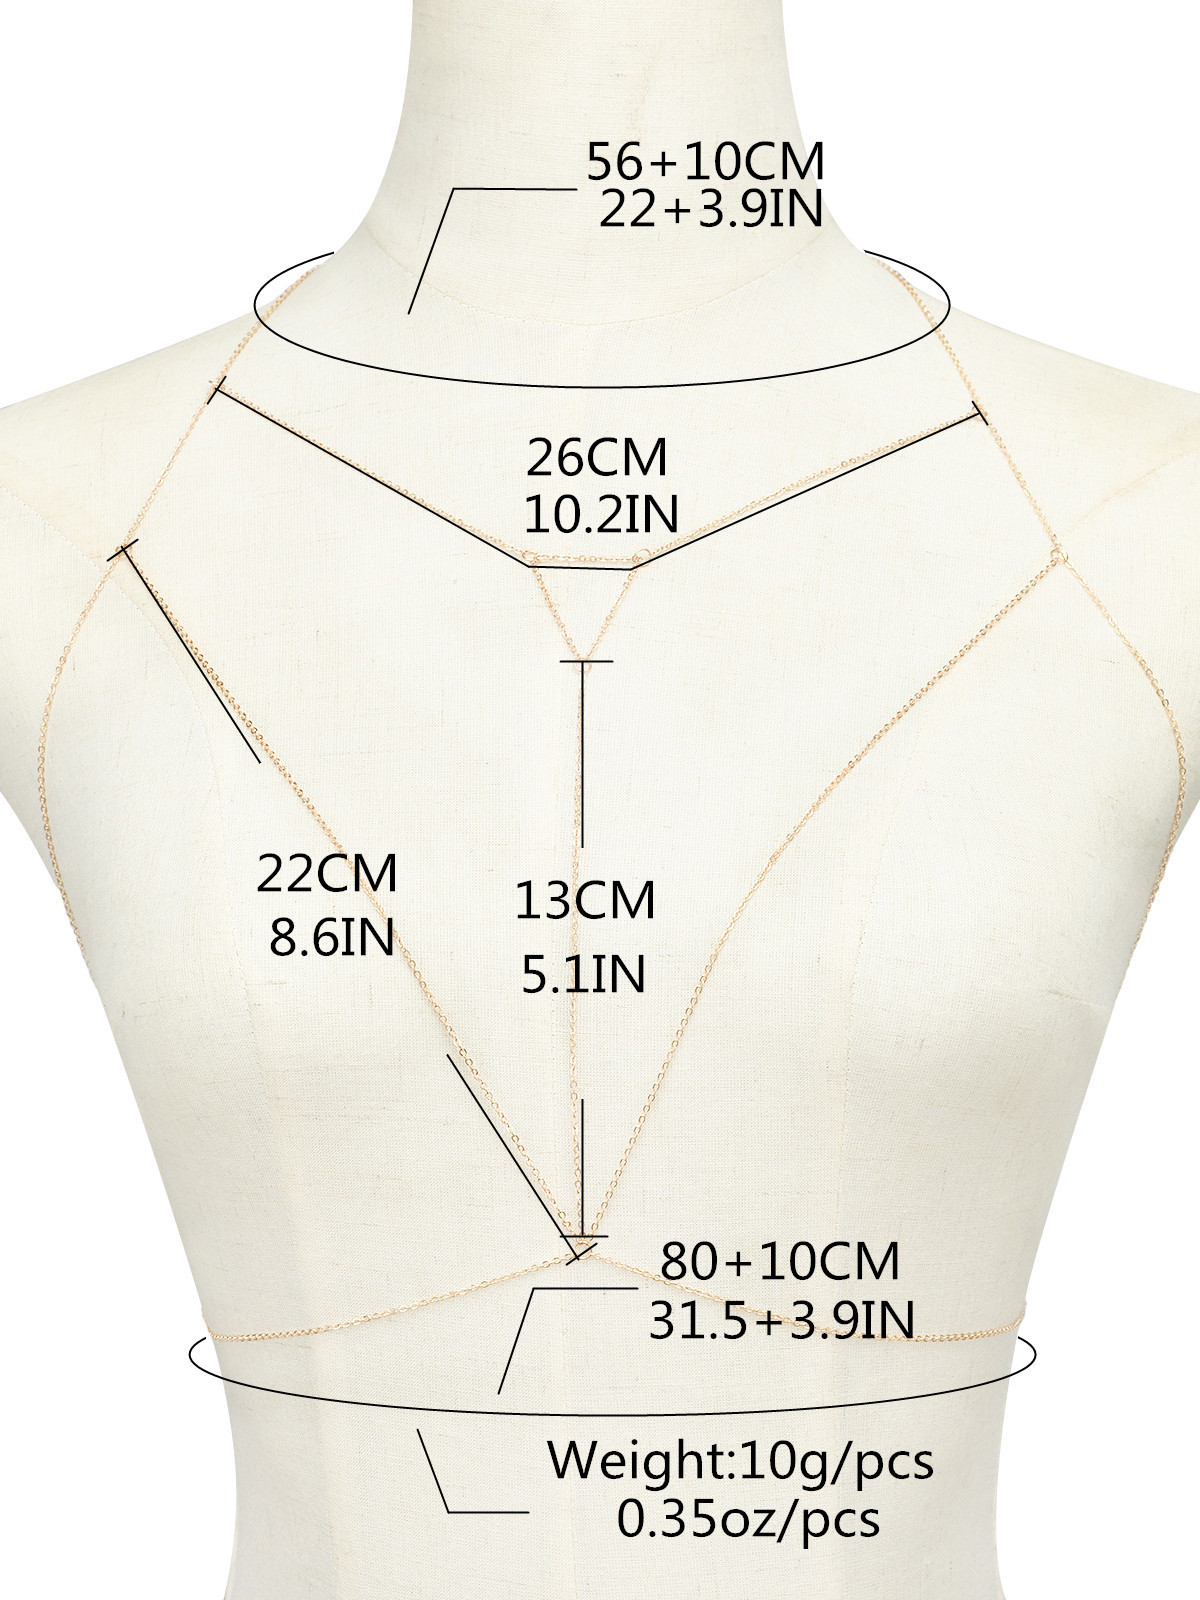 Casual Body Chain women Multilayer rhinestone Sexy gold Beach Bikini Harness for bra Bralette chain Straps accessories 1